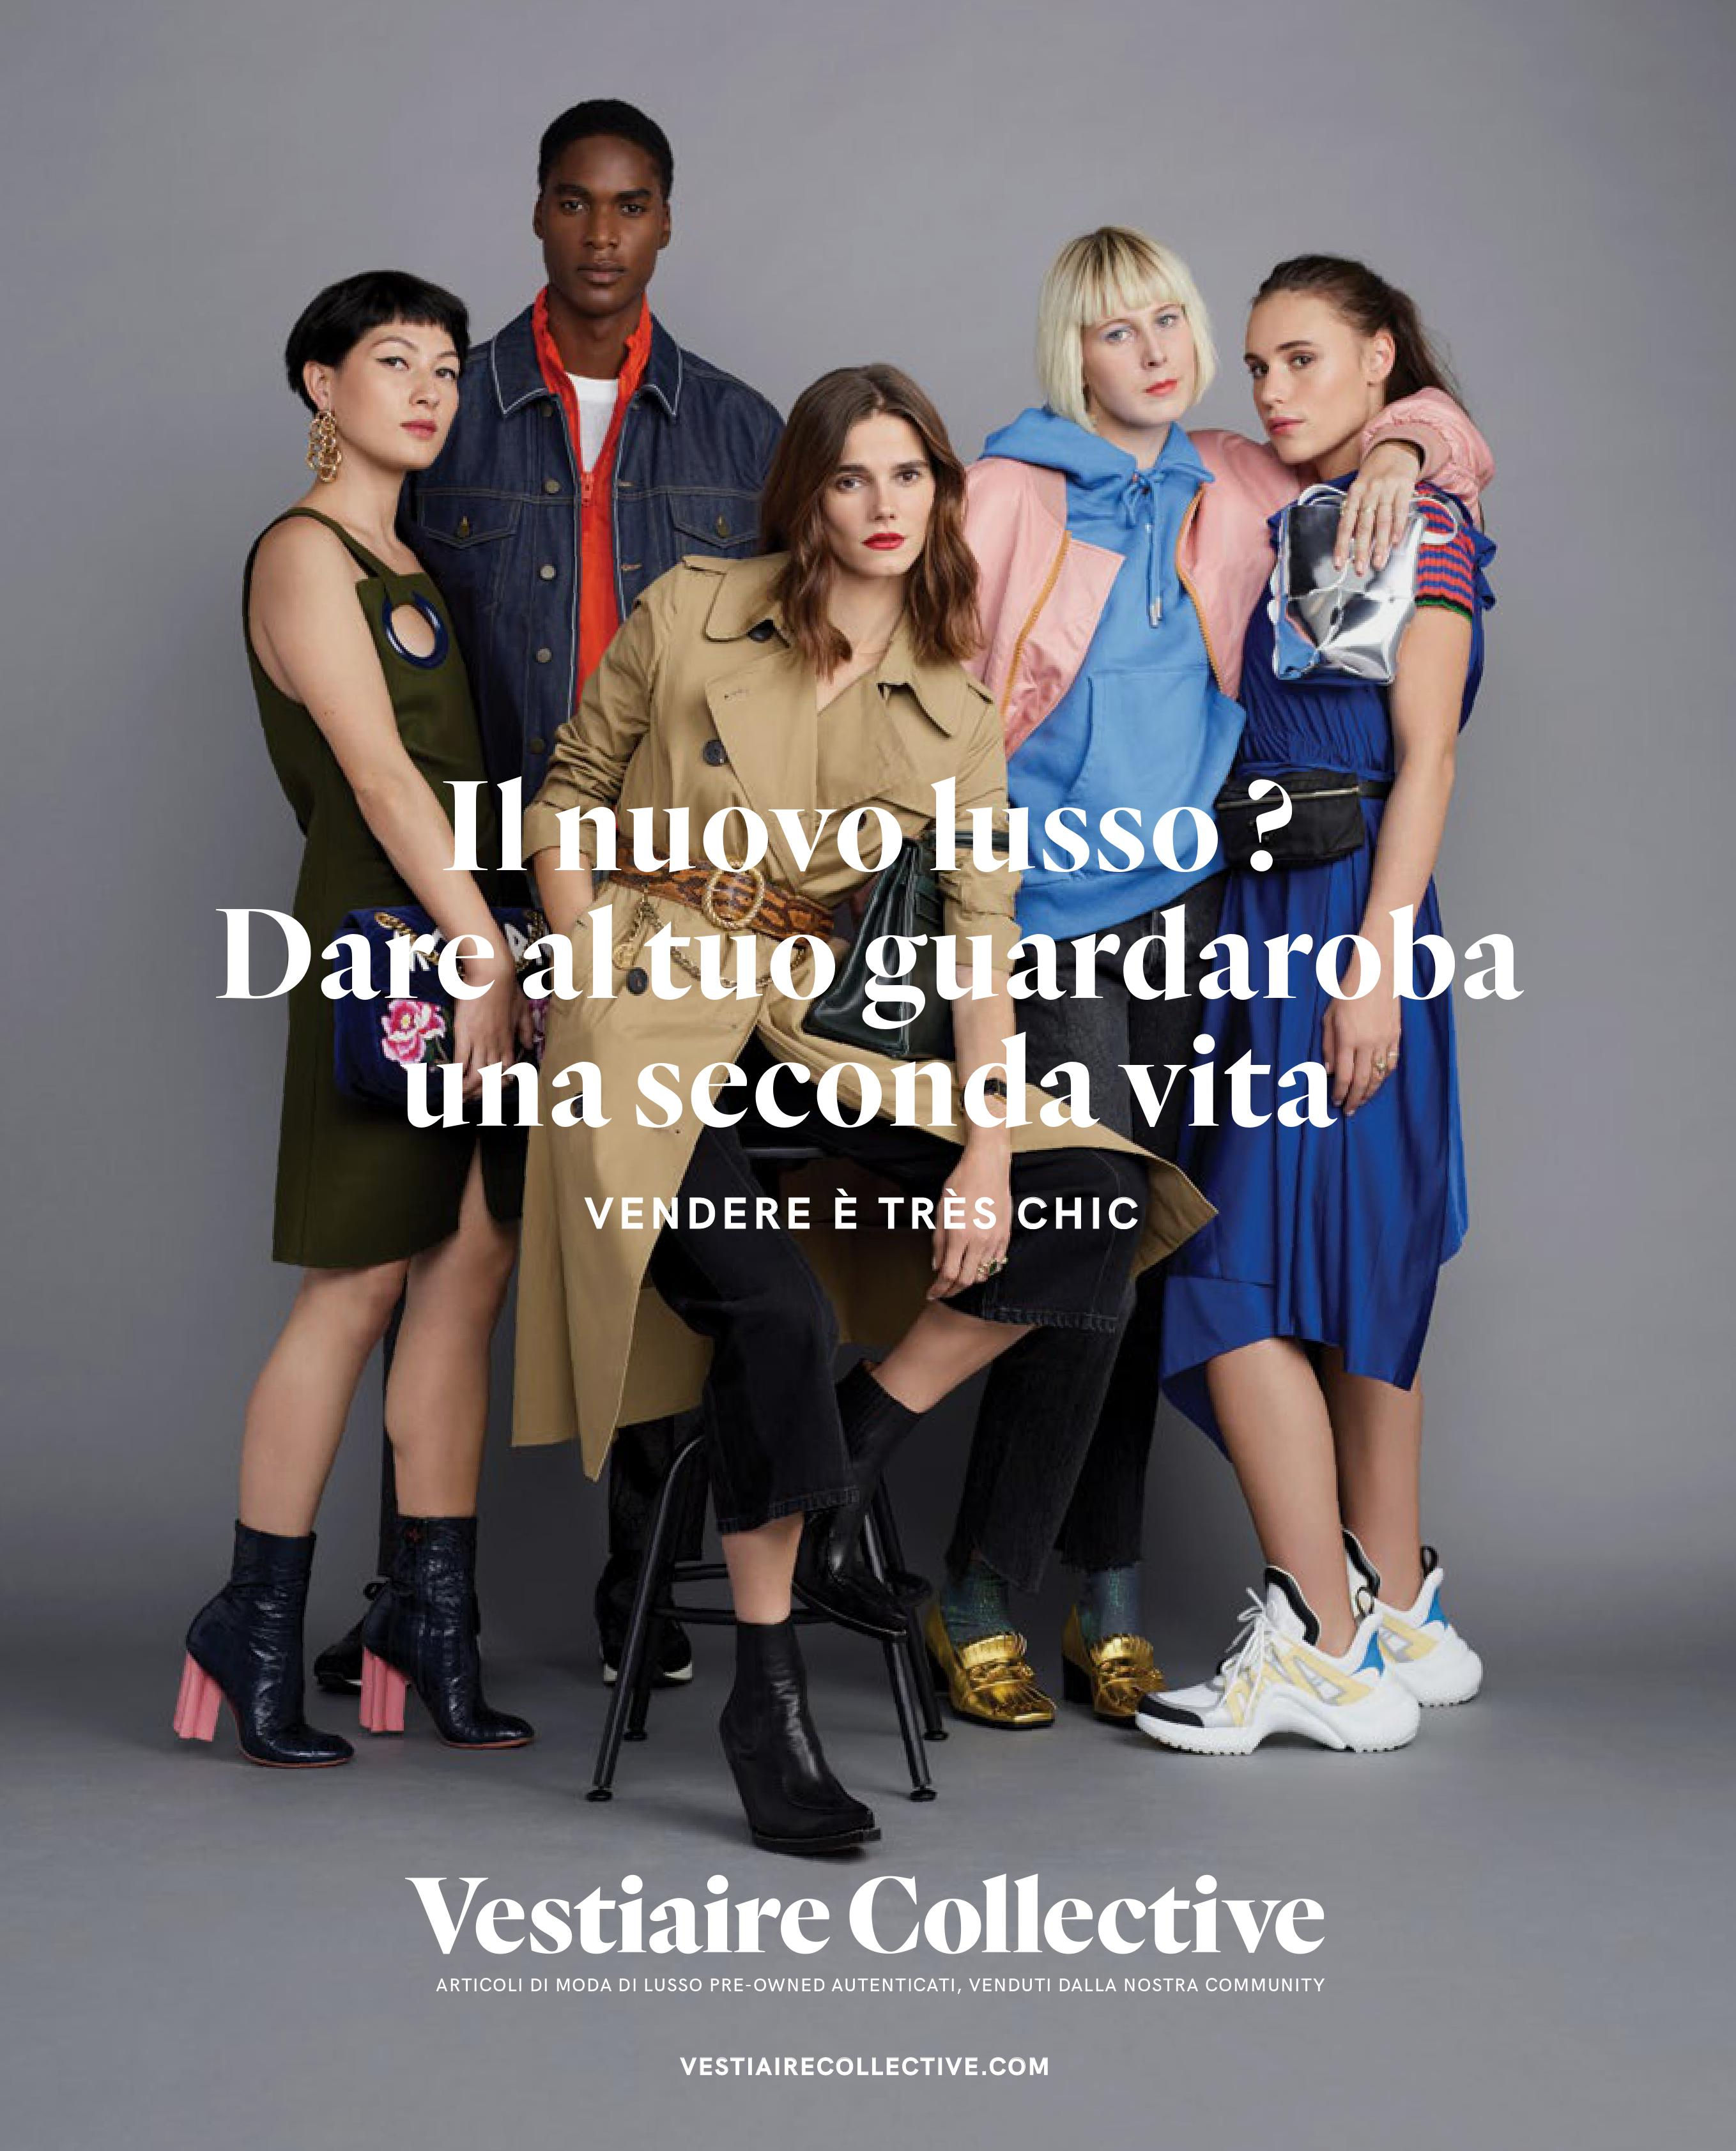 Vestiaire Collective shopping online